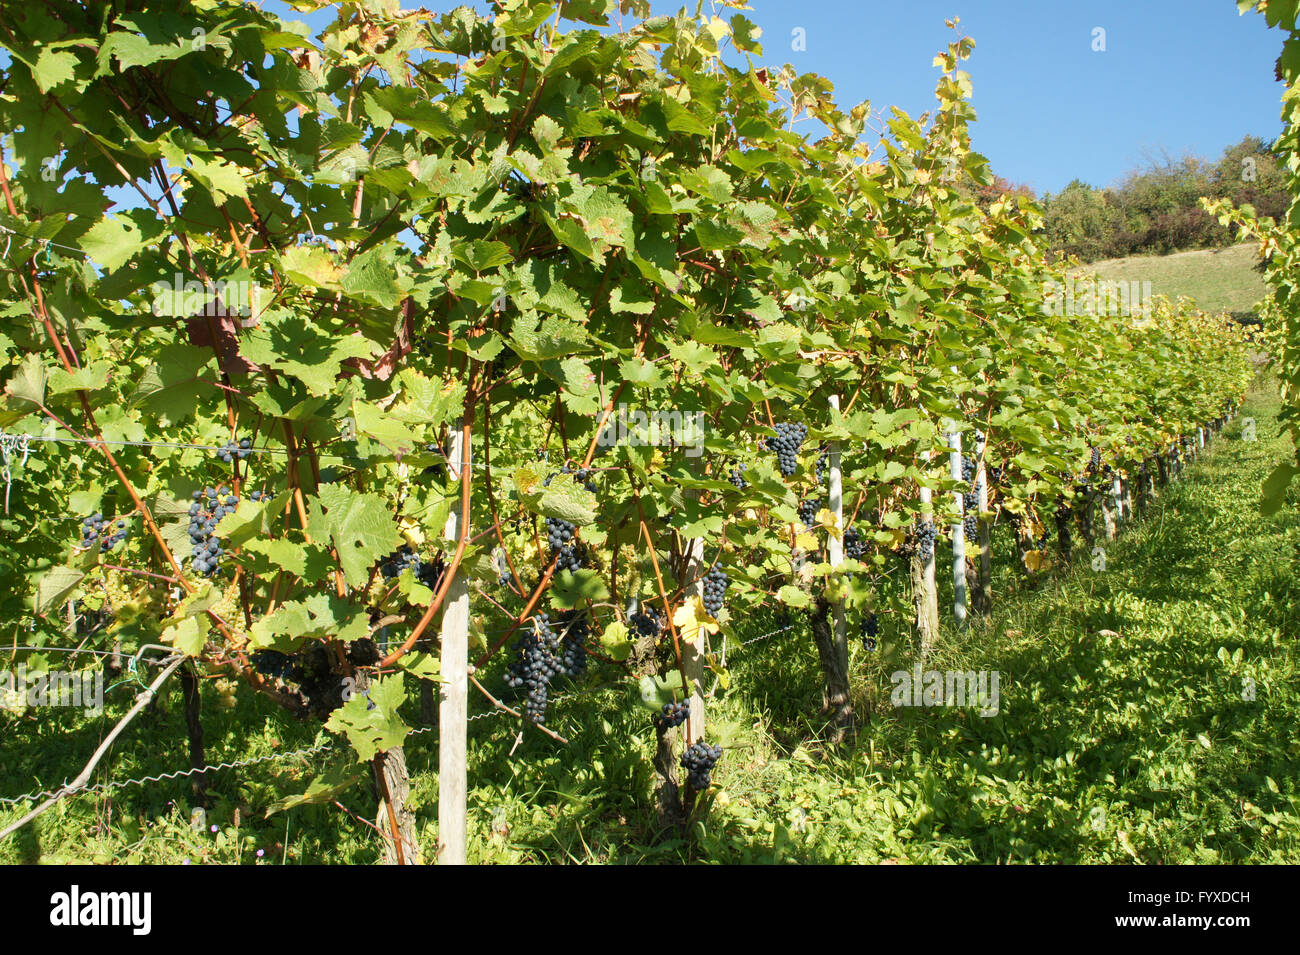 Vitis vinifera Dornfelder, Grape vine Stock Photo